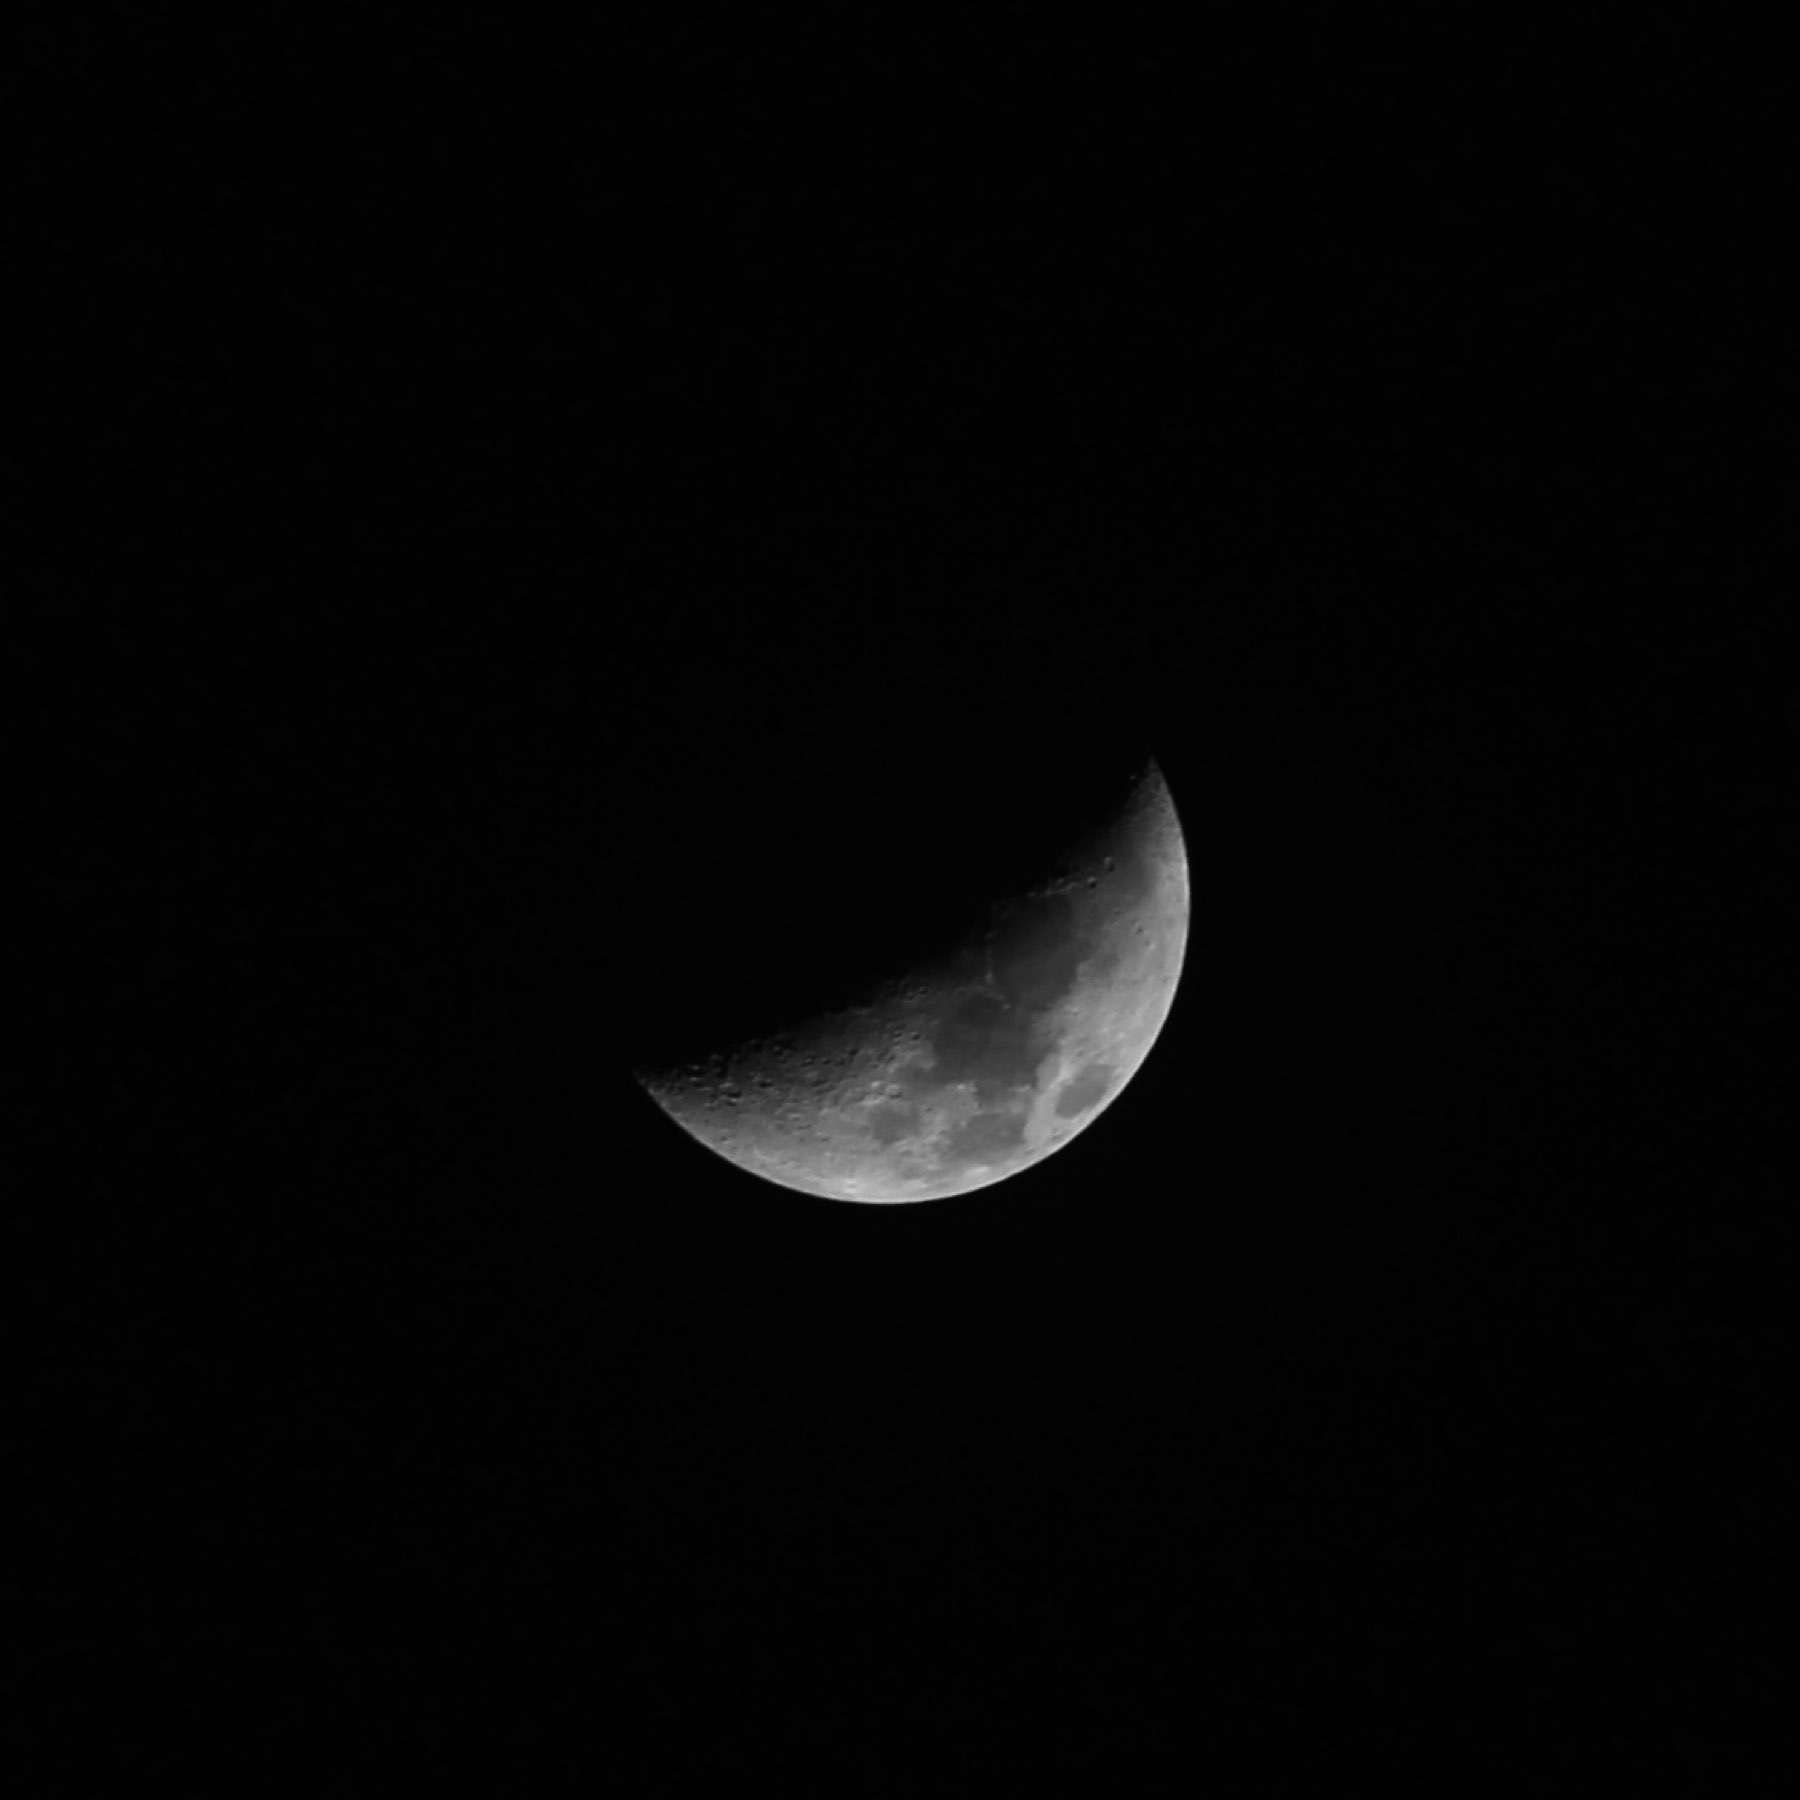 A waxing crescent mood.